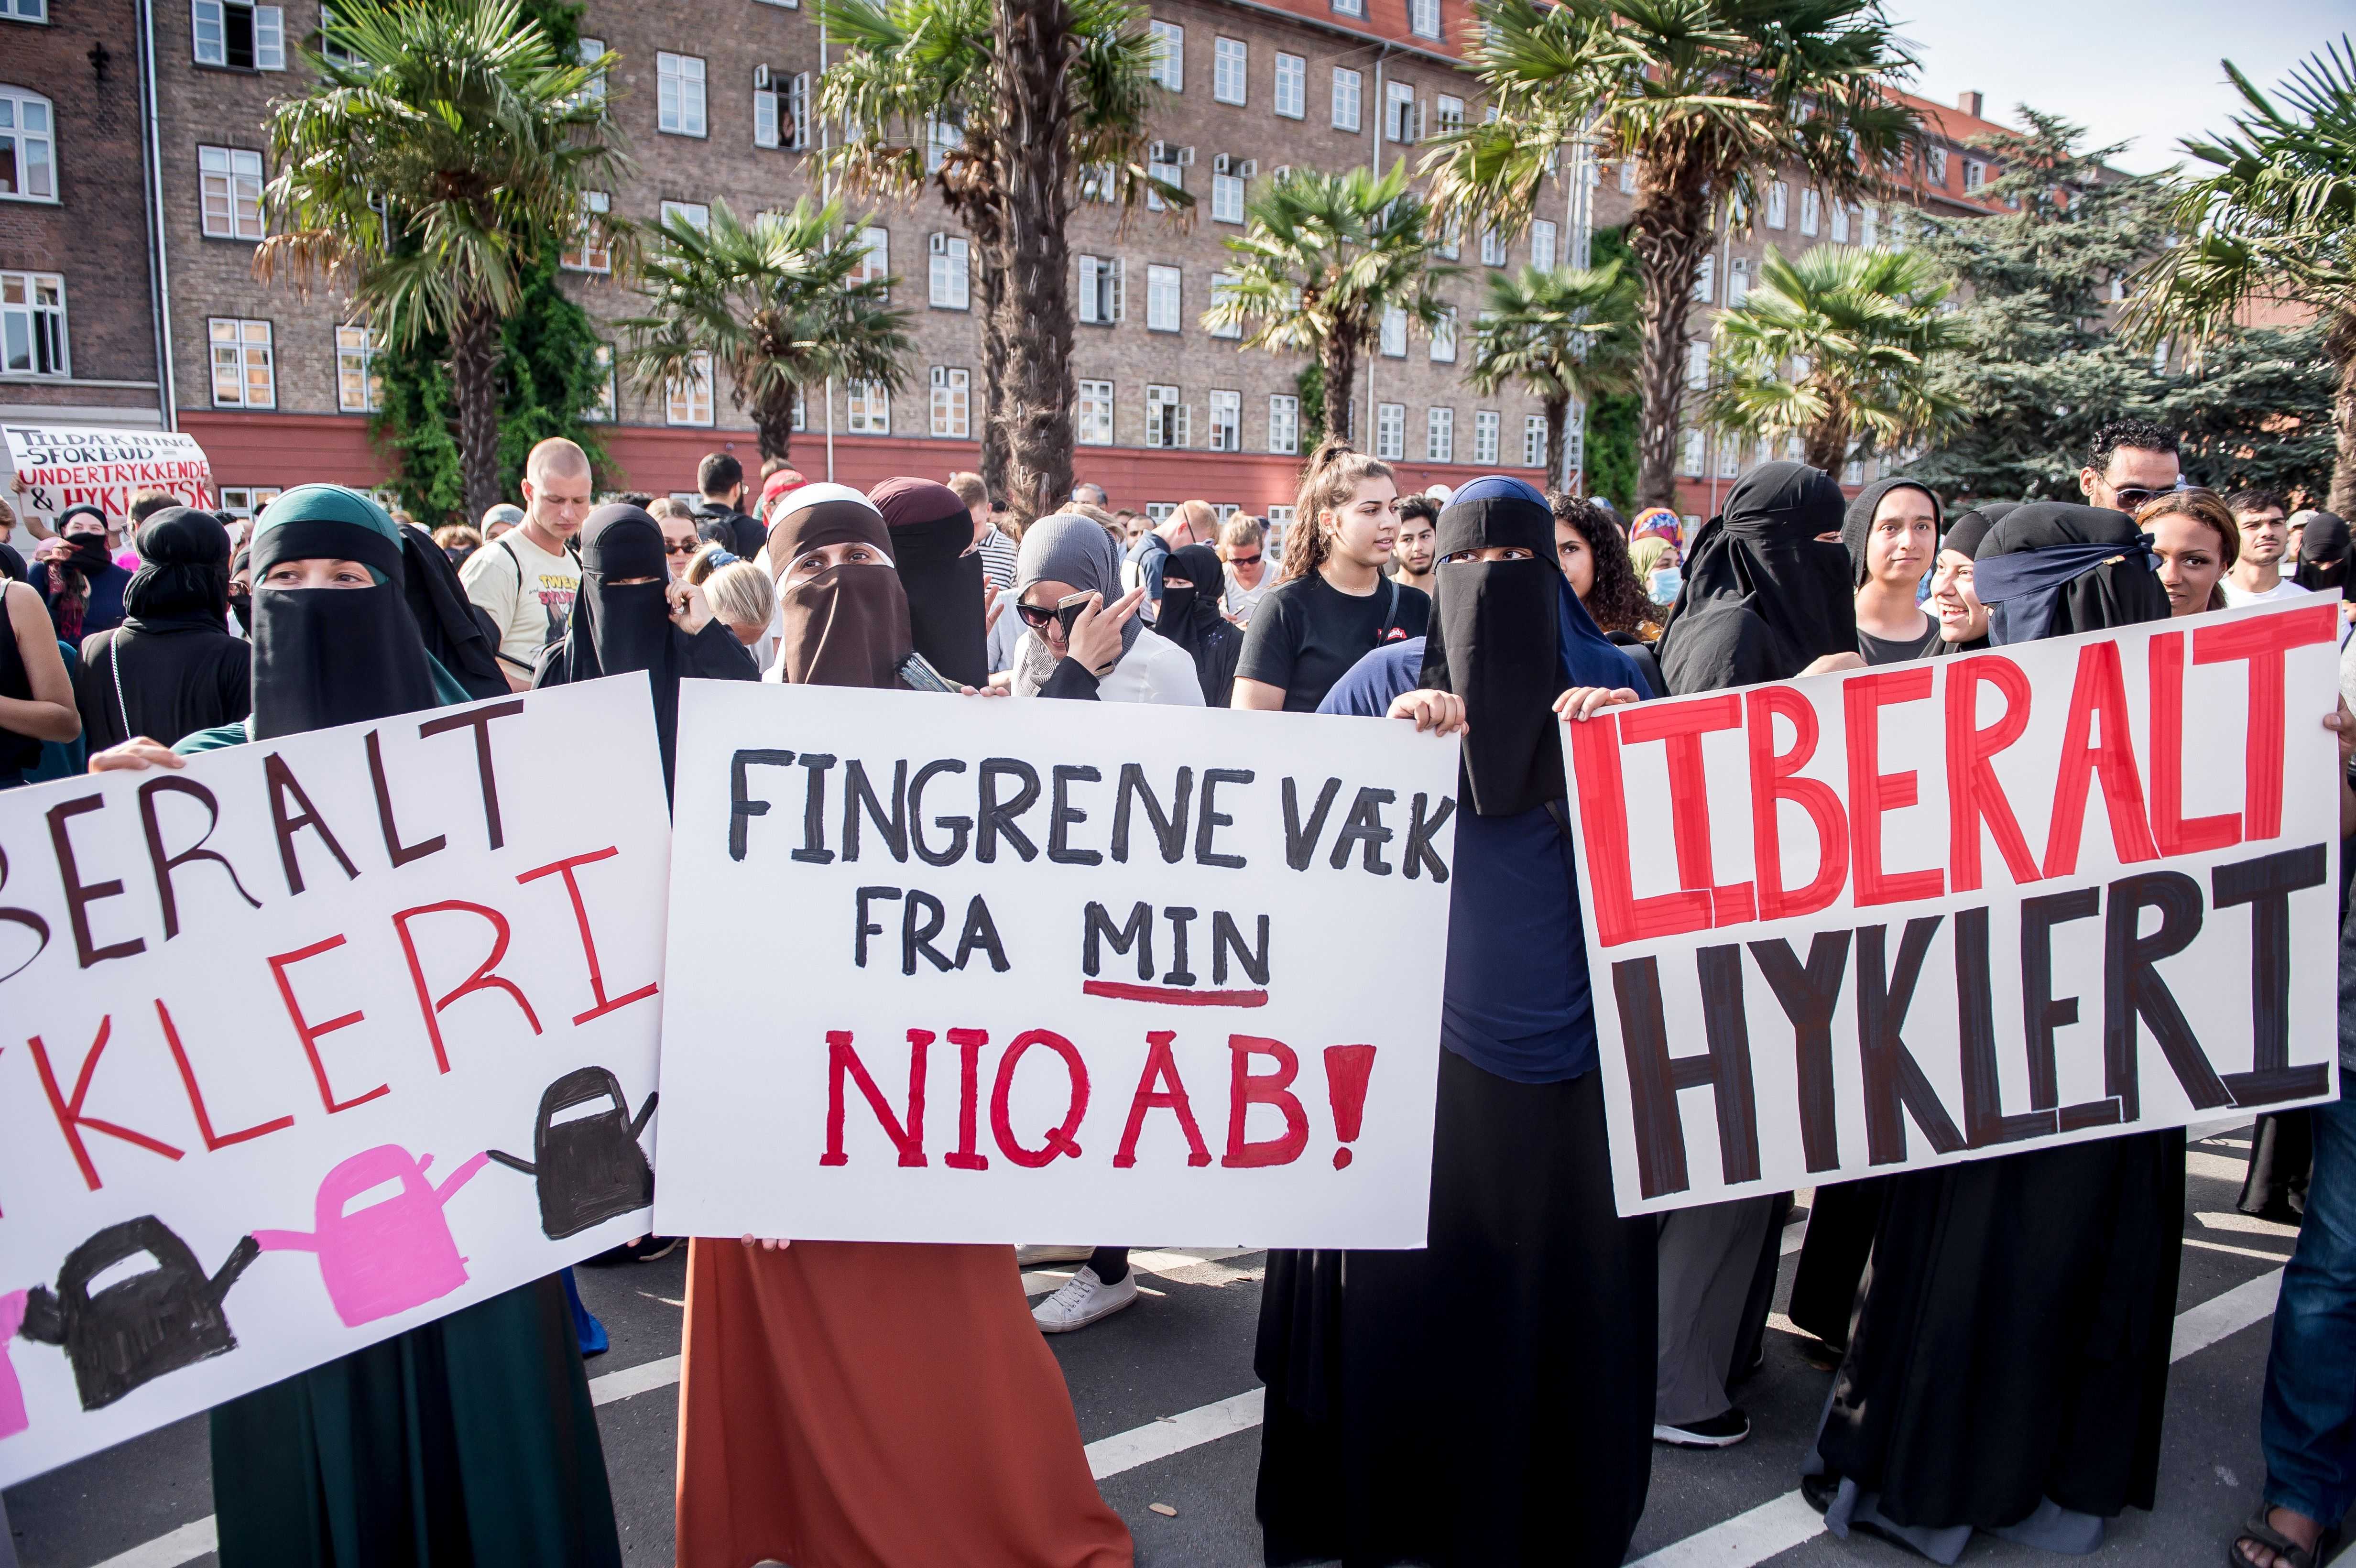 Women wearing niqabs to veil their faces take part in a demonstration on August 1, 2018, the first day of the implementation of the Danish face veil ban, in Copenhagen, Denmark.